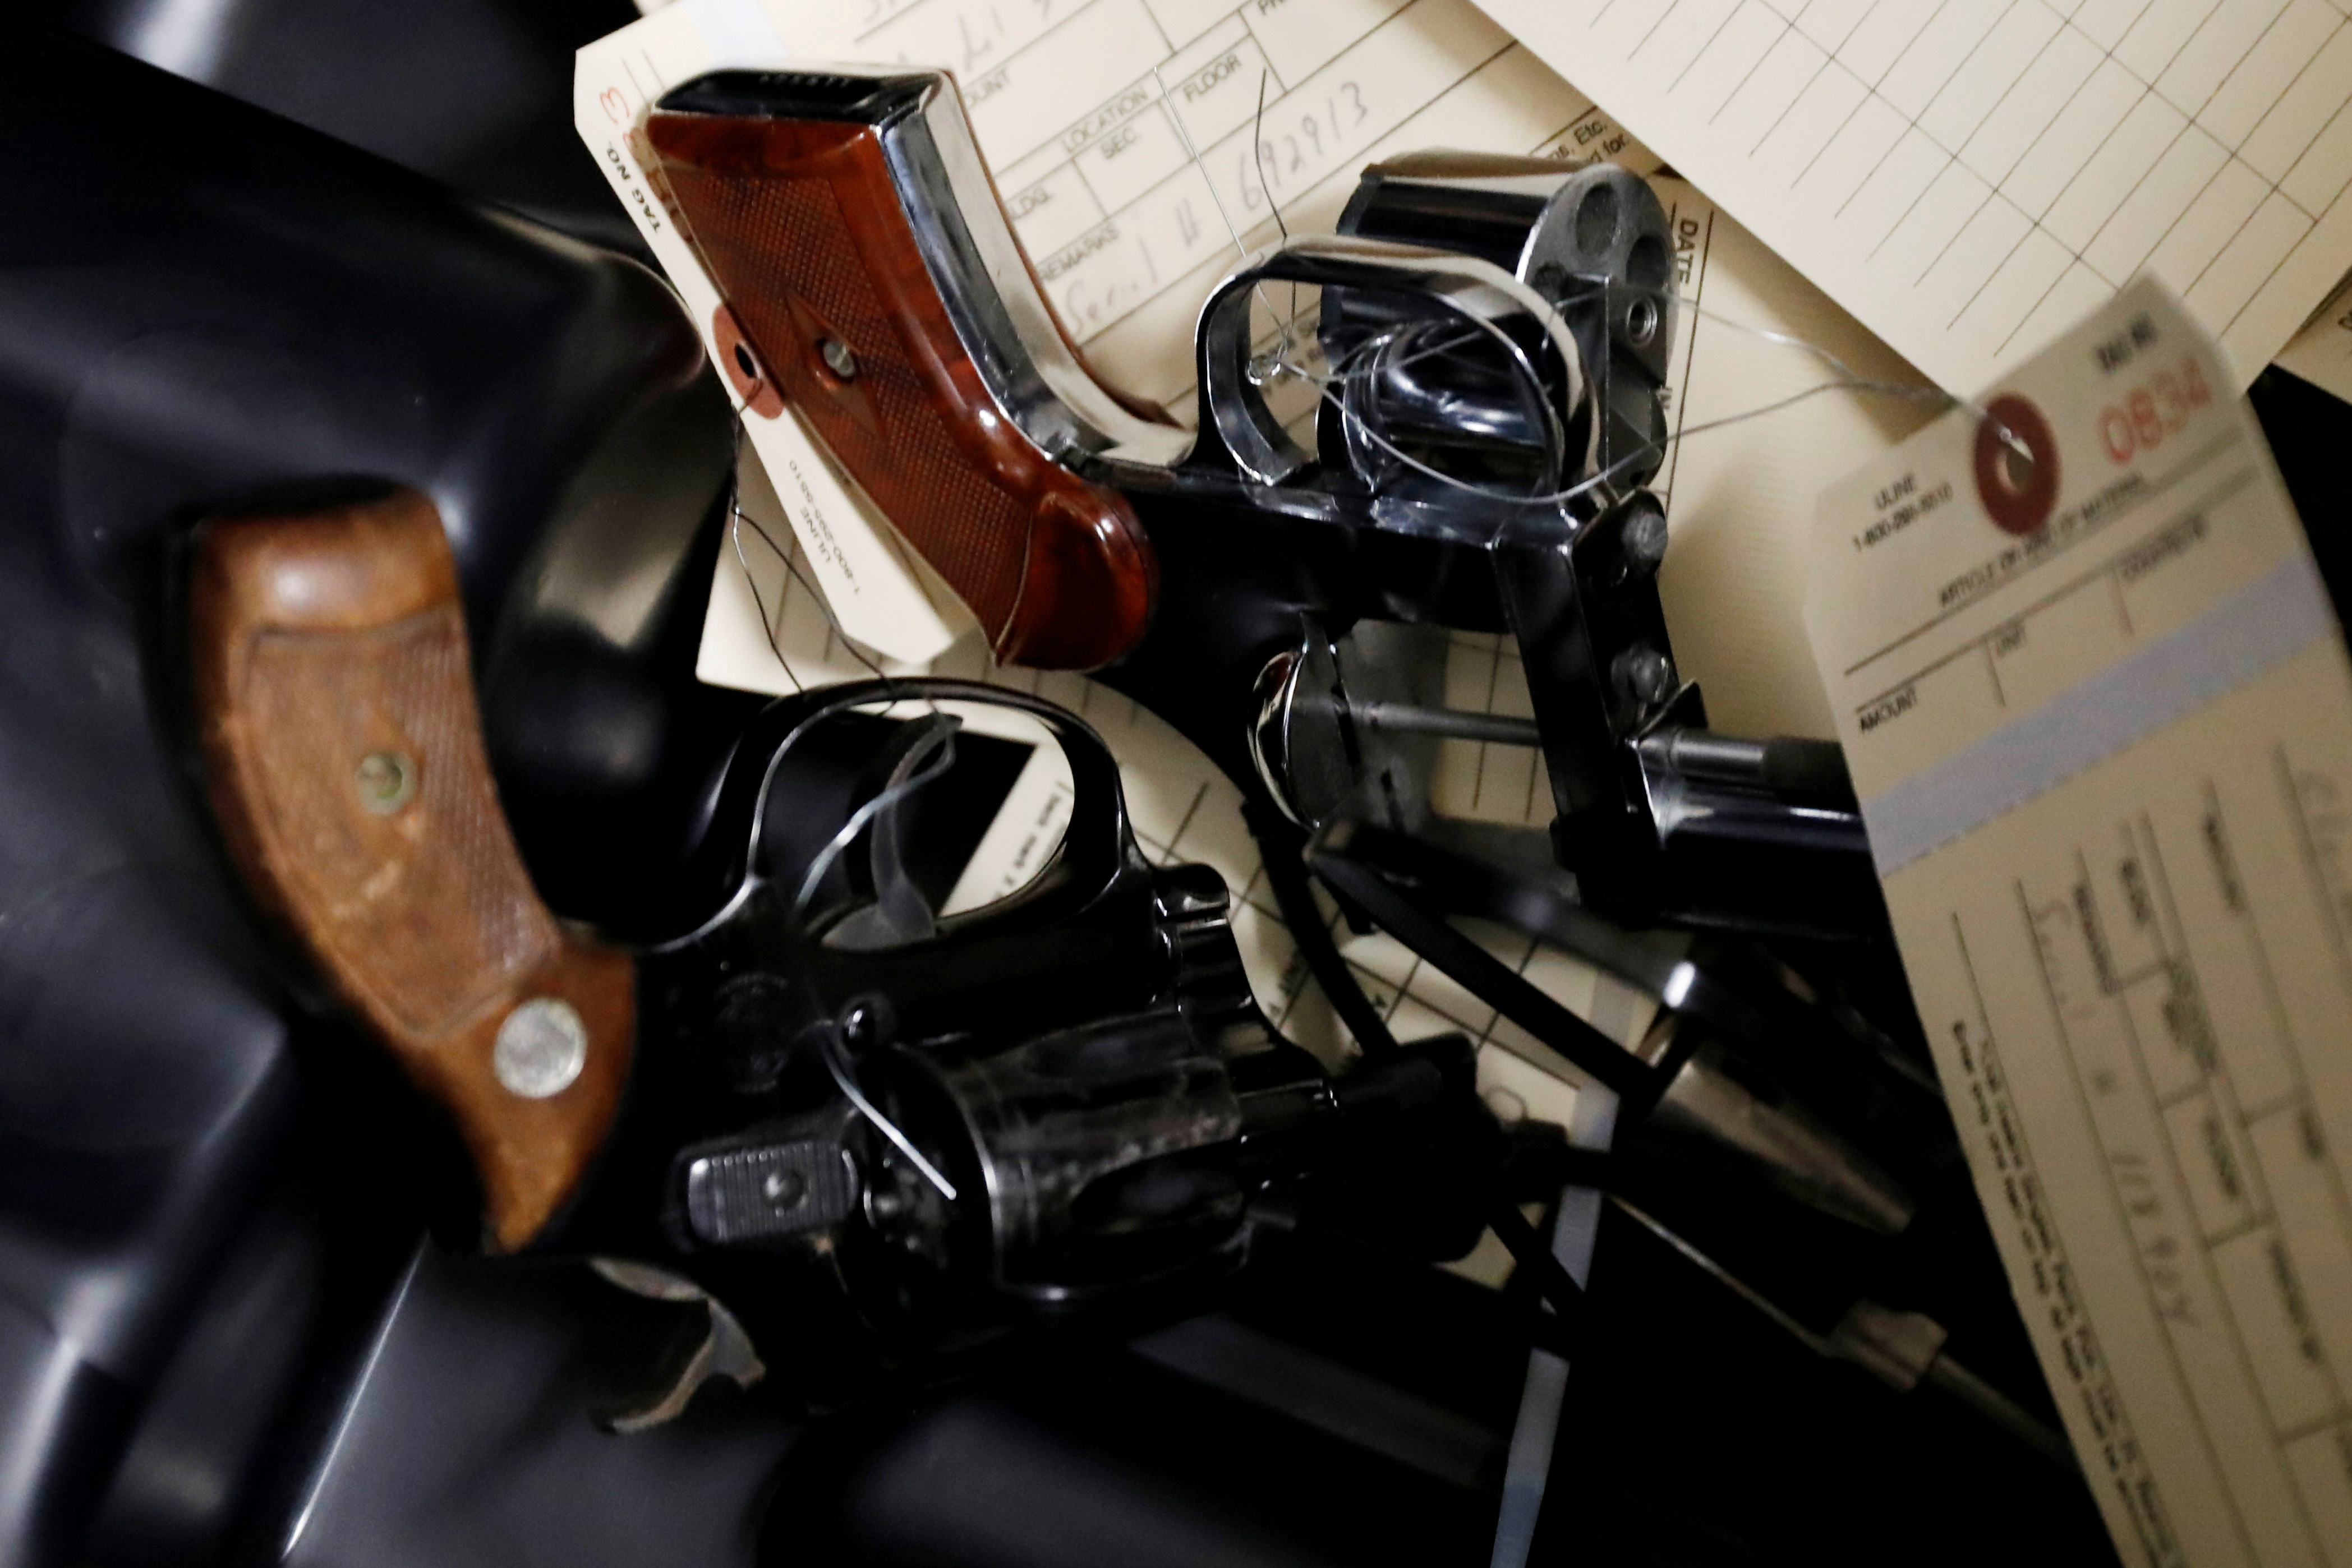 Handguns are seen after being turned in during a community gun buy-back program in White Plains, New York, U.S., April 13, 2018. REUTERS/Shannon Stapleton